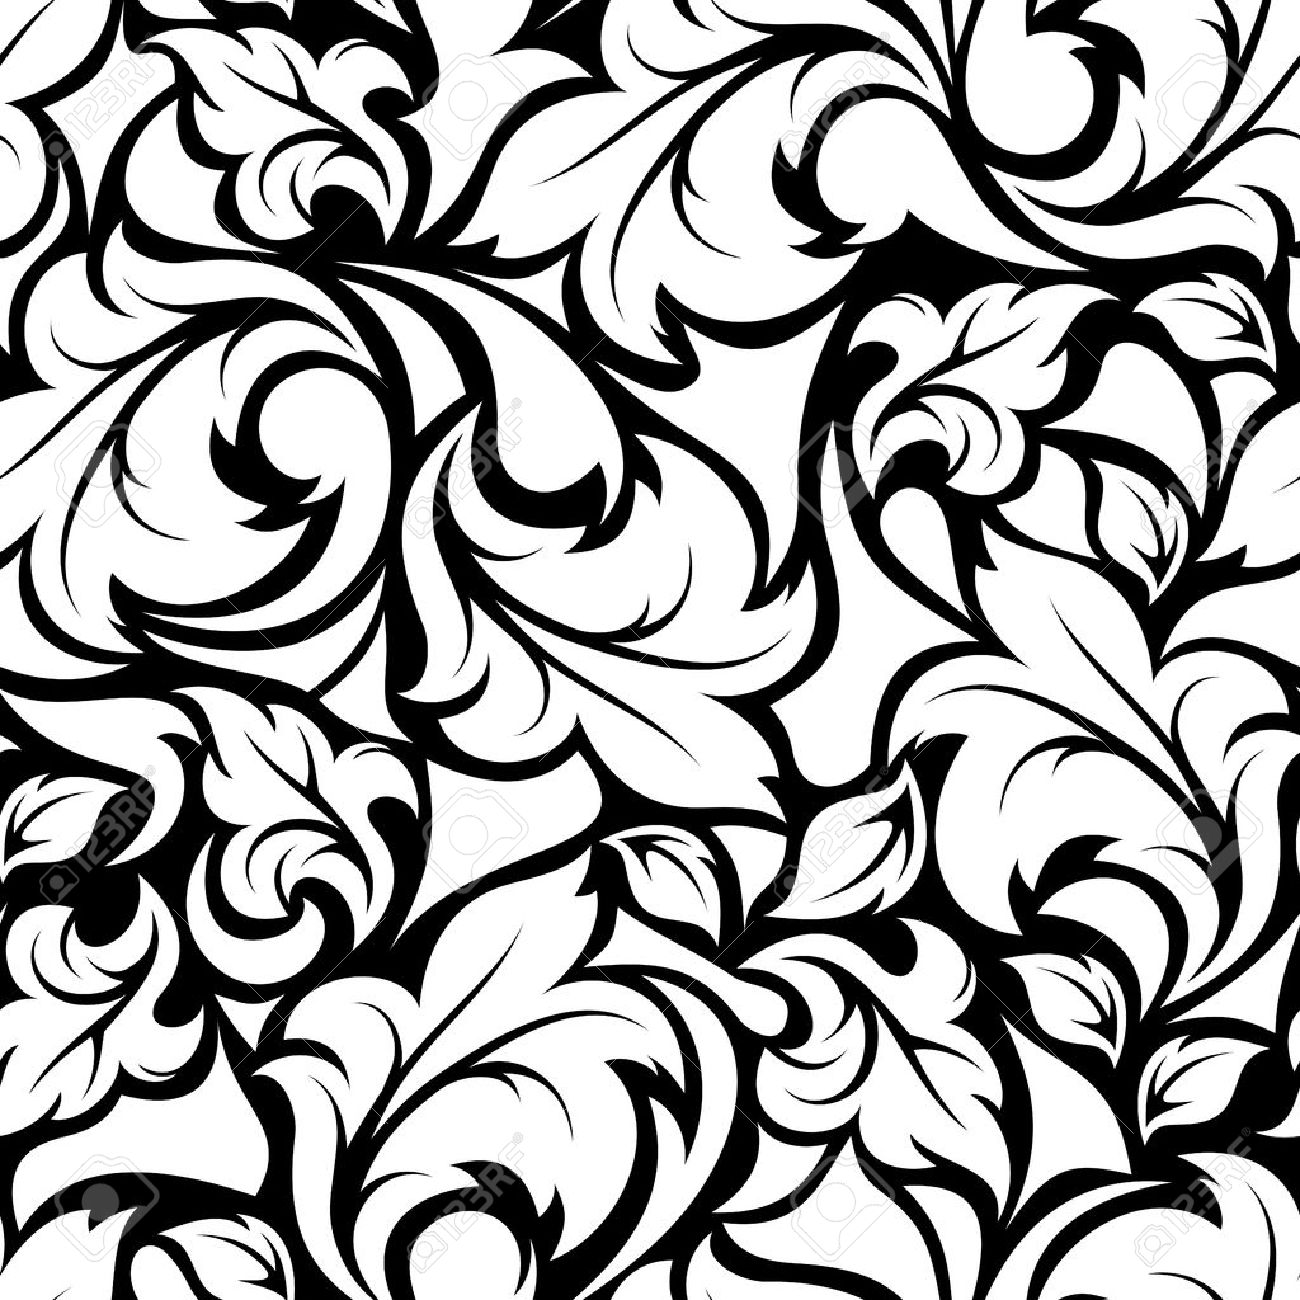 Vector Vintage Seamless Black And White Floral Pattern Royalty